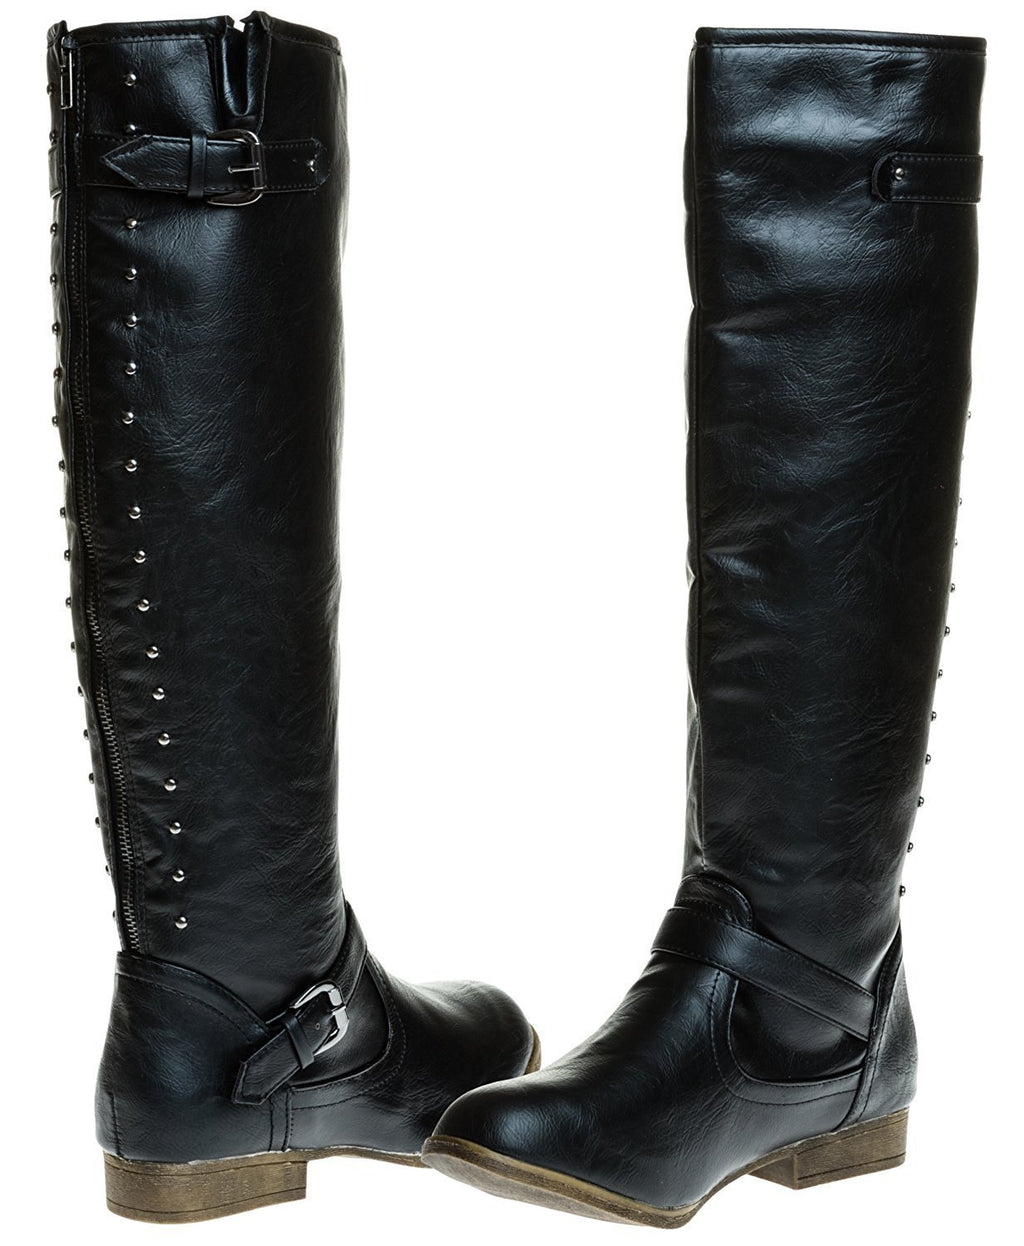 Sara Z Ladies Riding Boot with Back Studs (Black), Size 9